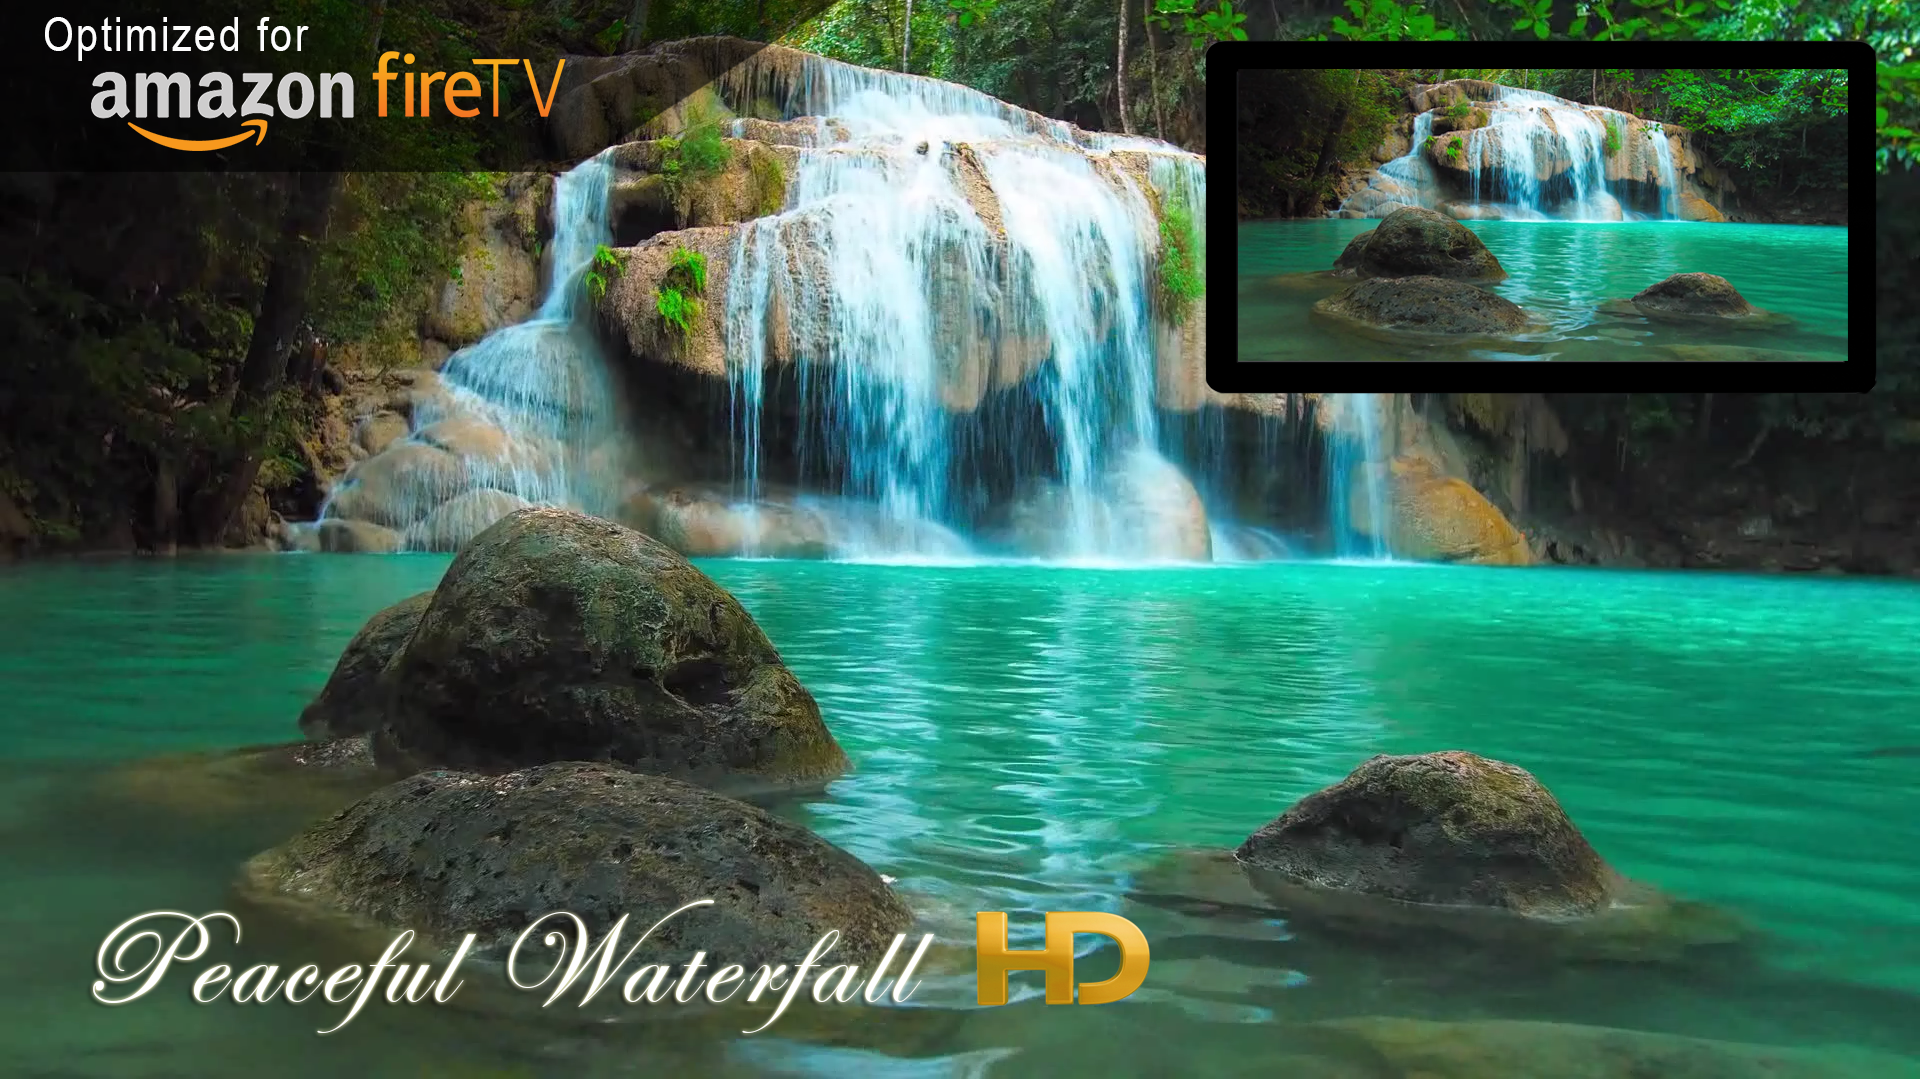 Amazon Com Beach Hd Wallpapers Appstore For Android: Amazon.com: Peaceful Waterfall HD: Appstore For Android